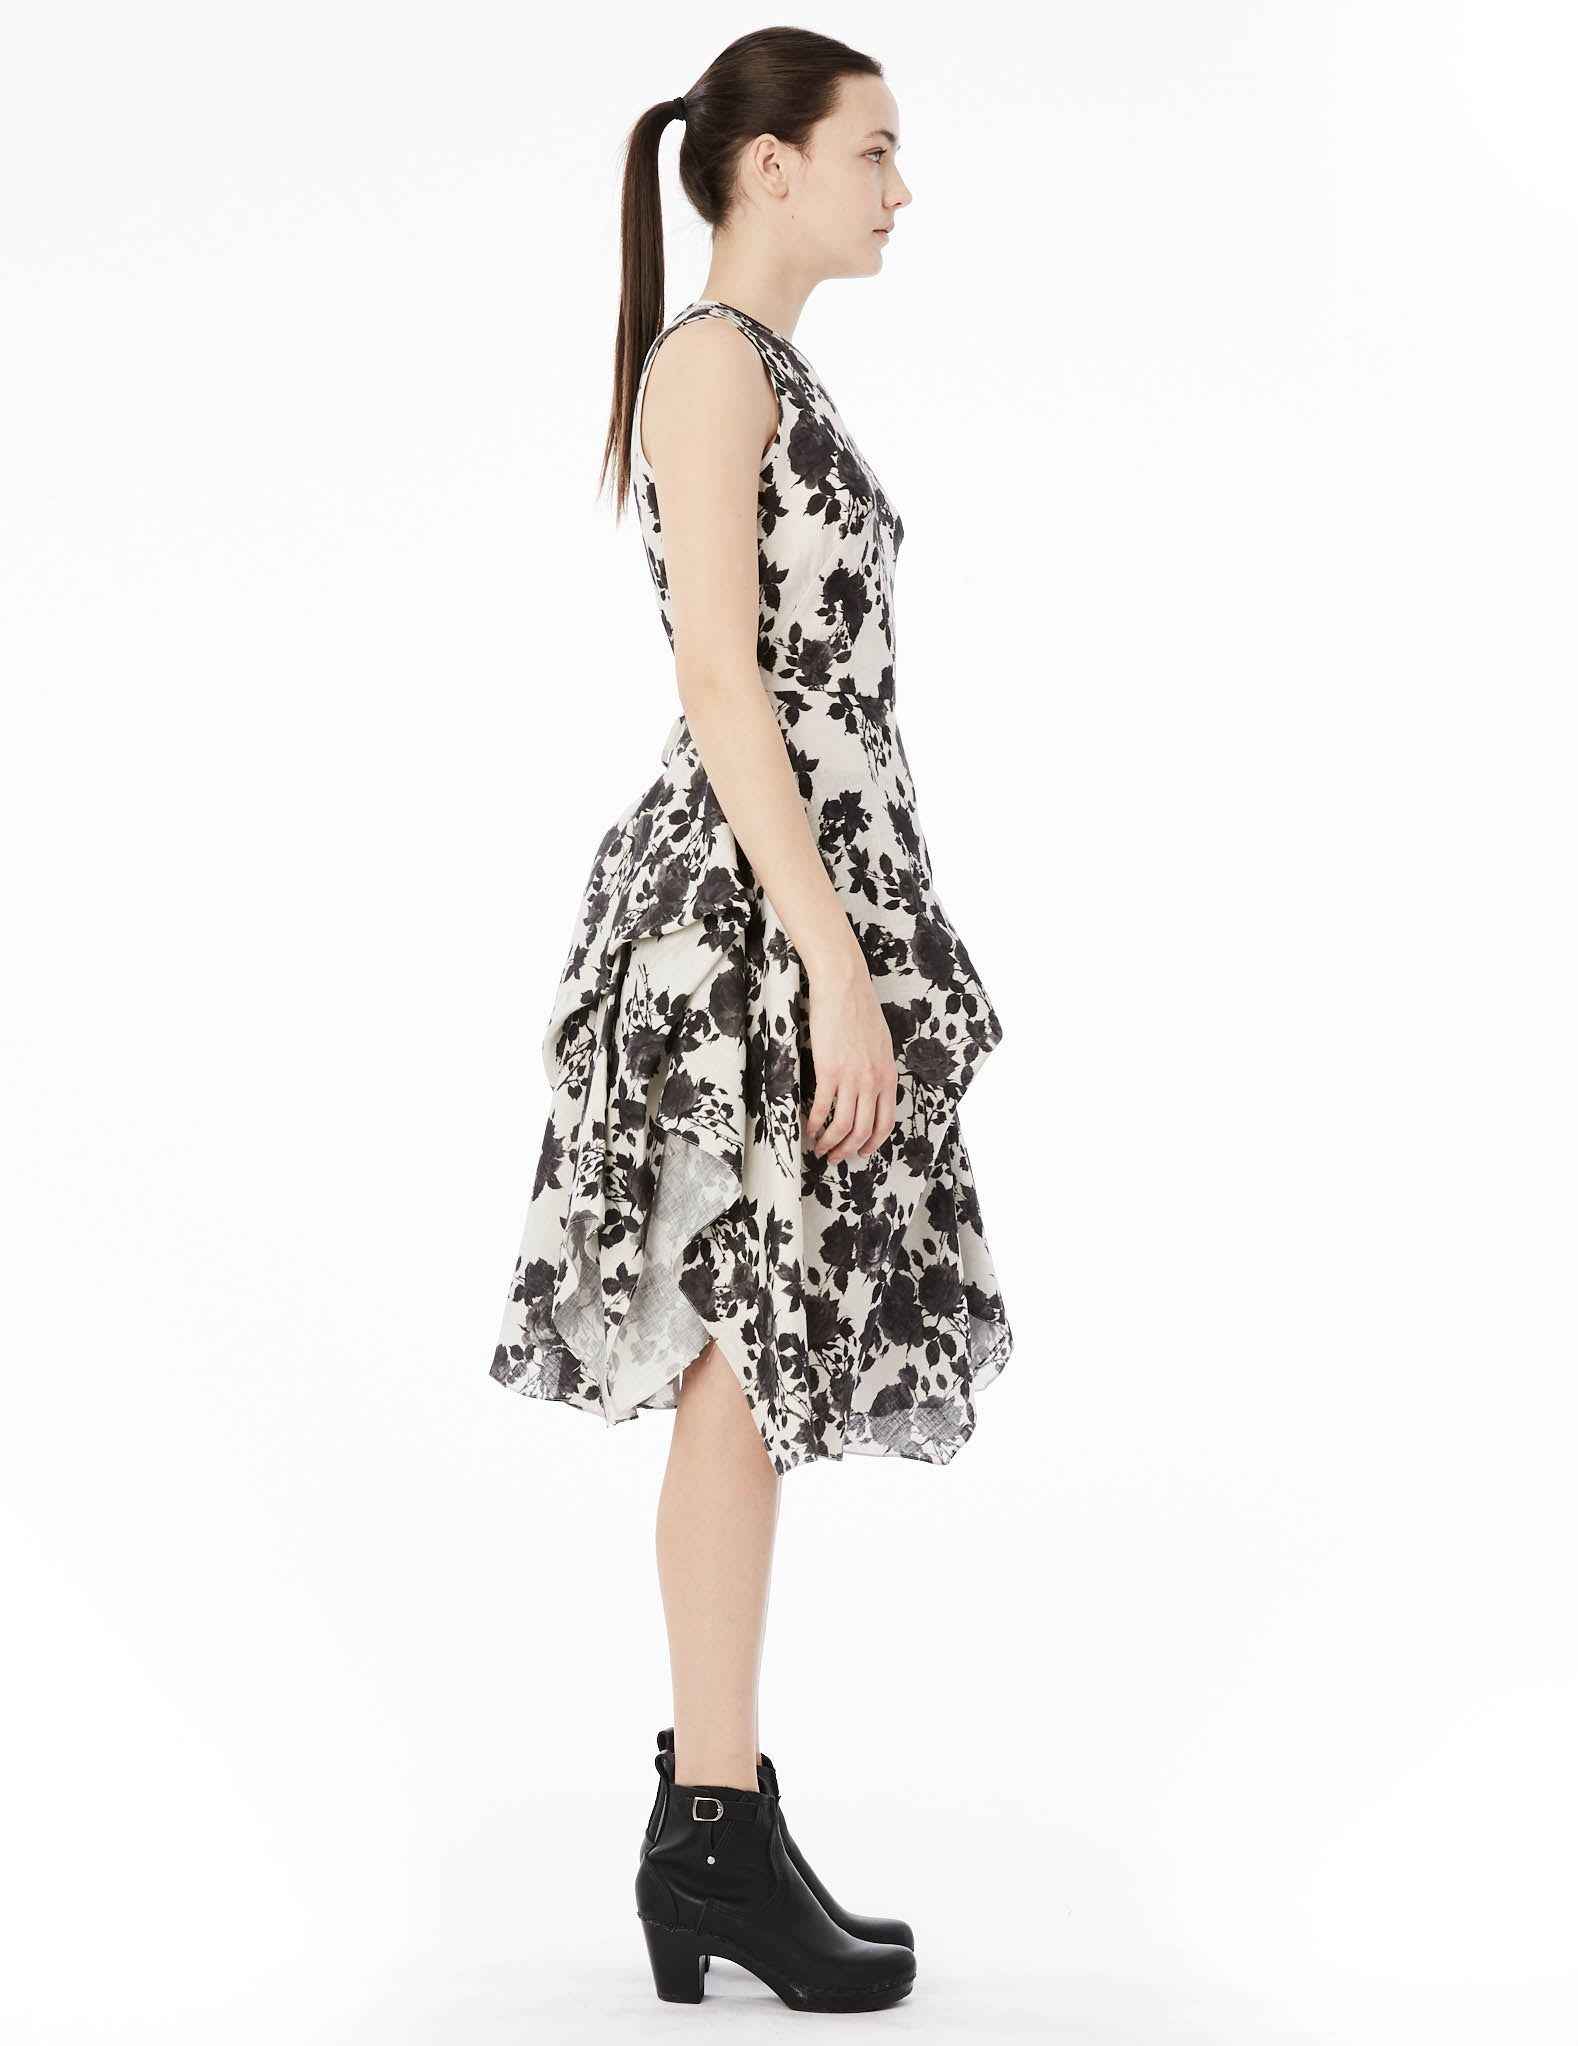 ca8ec53dafa short gown with sleeveless top and draped skirt